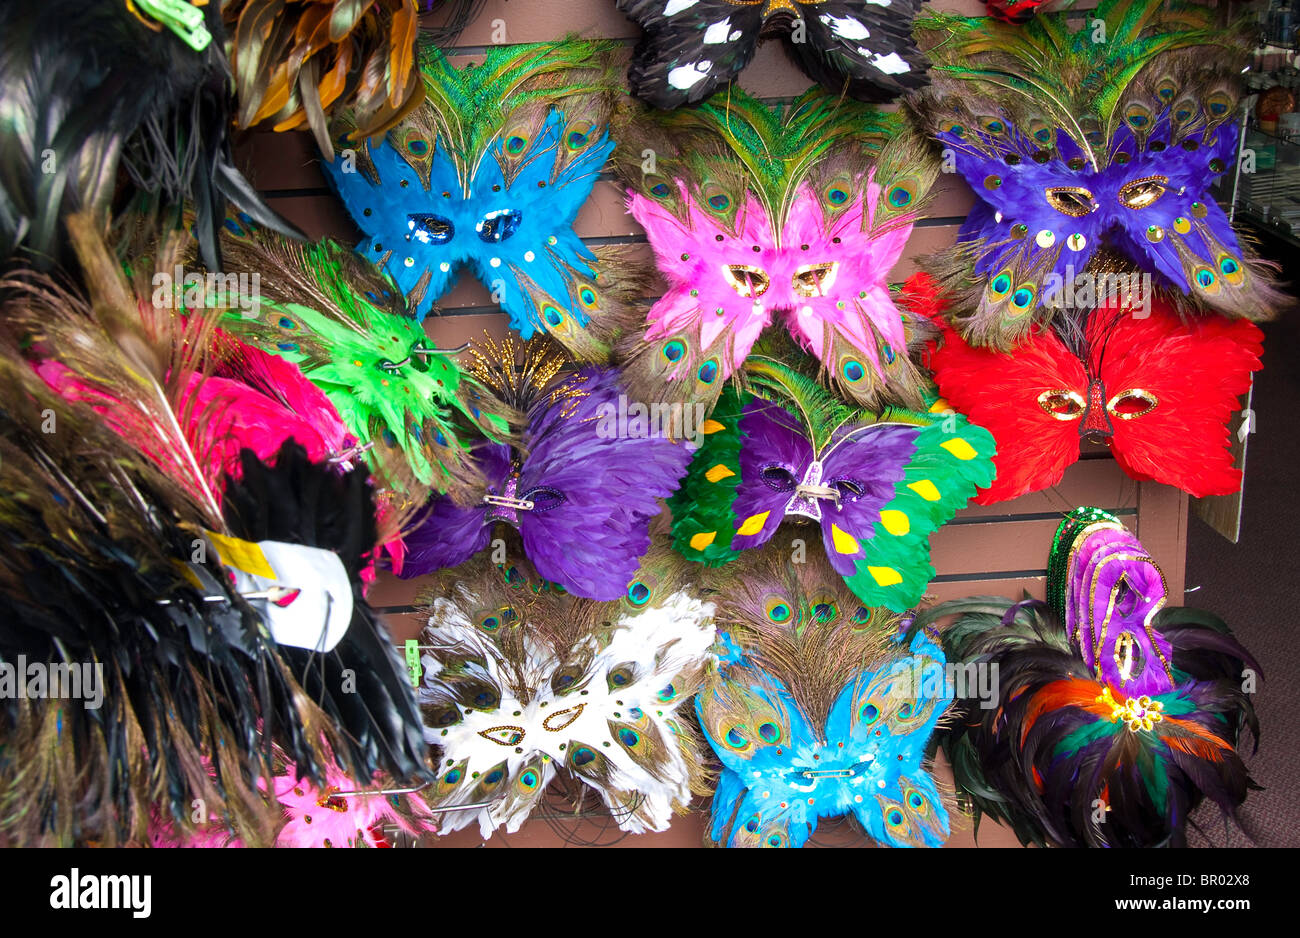 Mardi Gras masks in New Orleans, Louisiana, USA - Stock Image